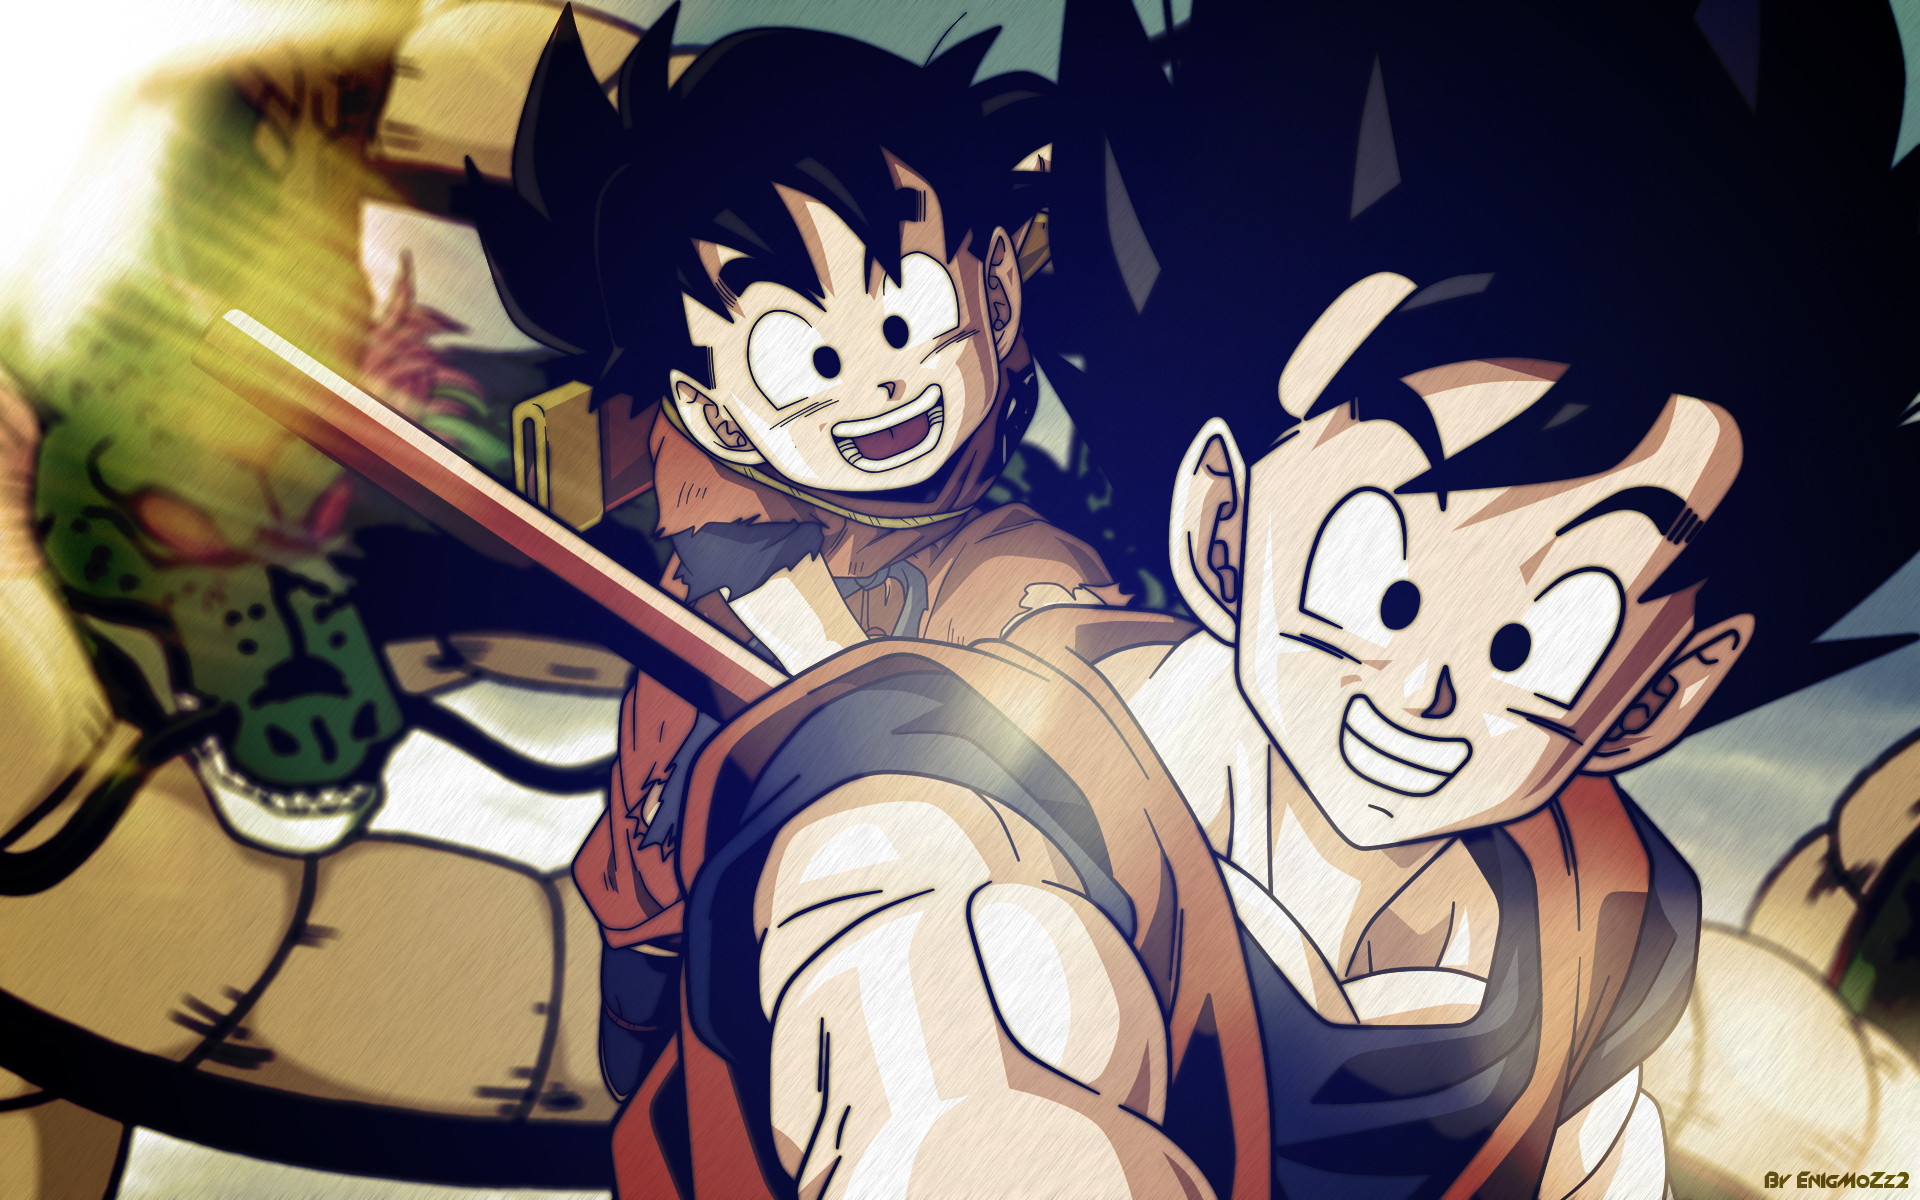 DRAGON BALL/#Wallpaper - Zerochan